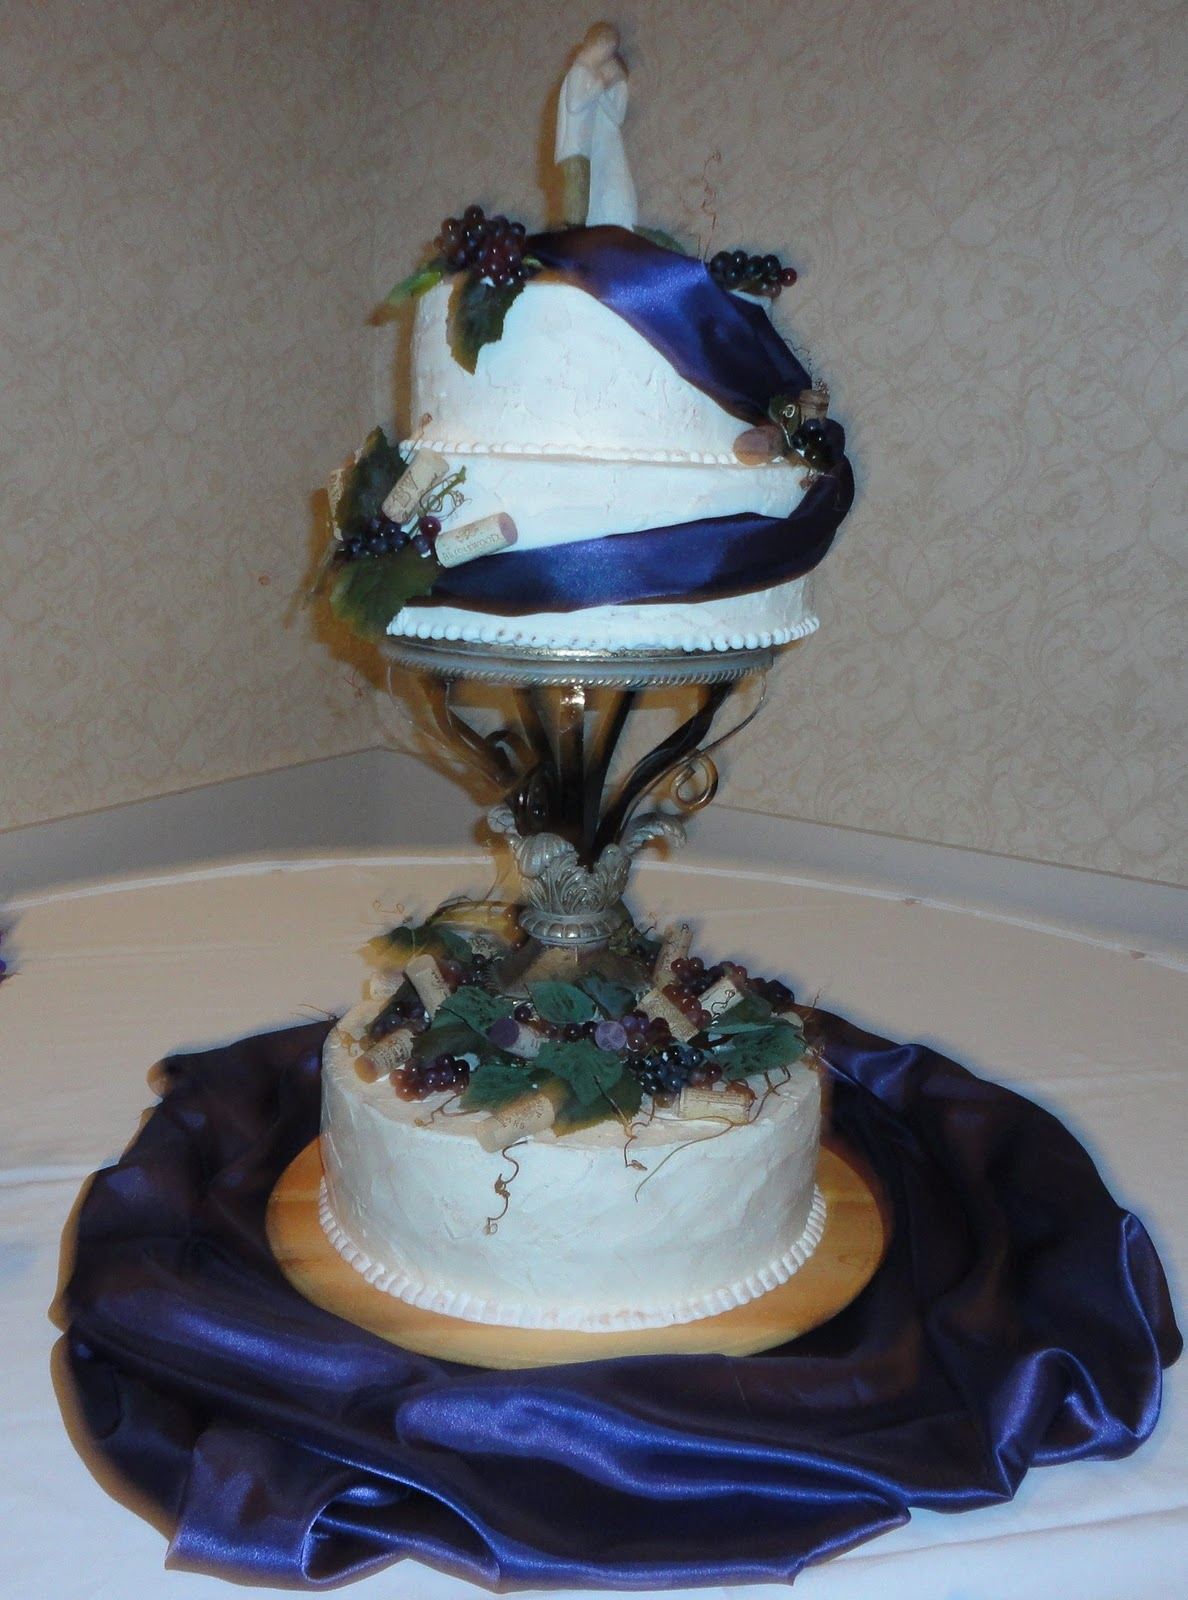 bake a wedding cake at home creek bake shoppe wedding cake gallery 11014